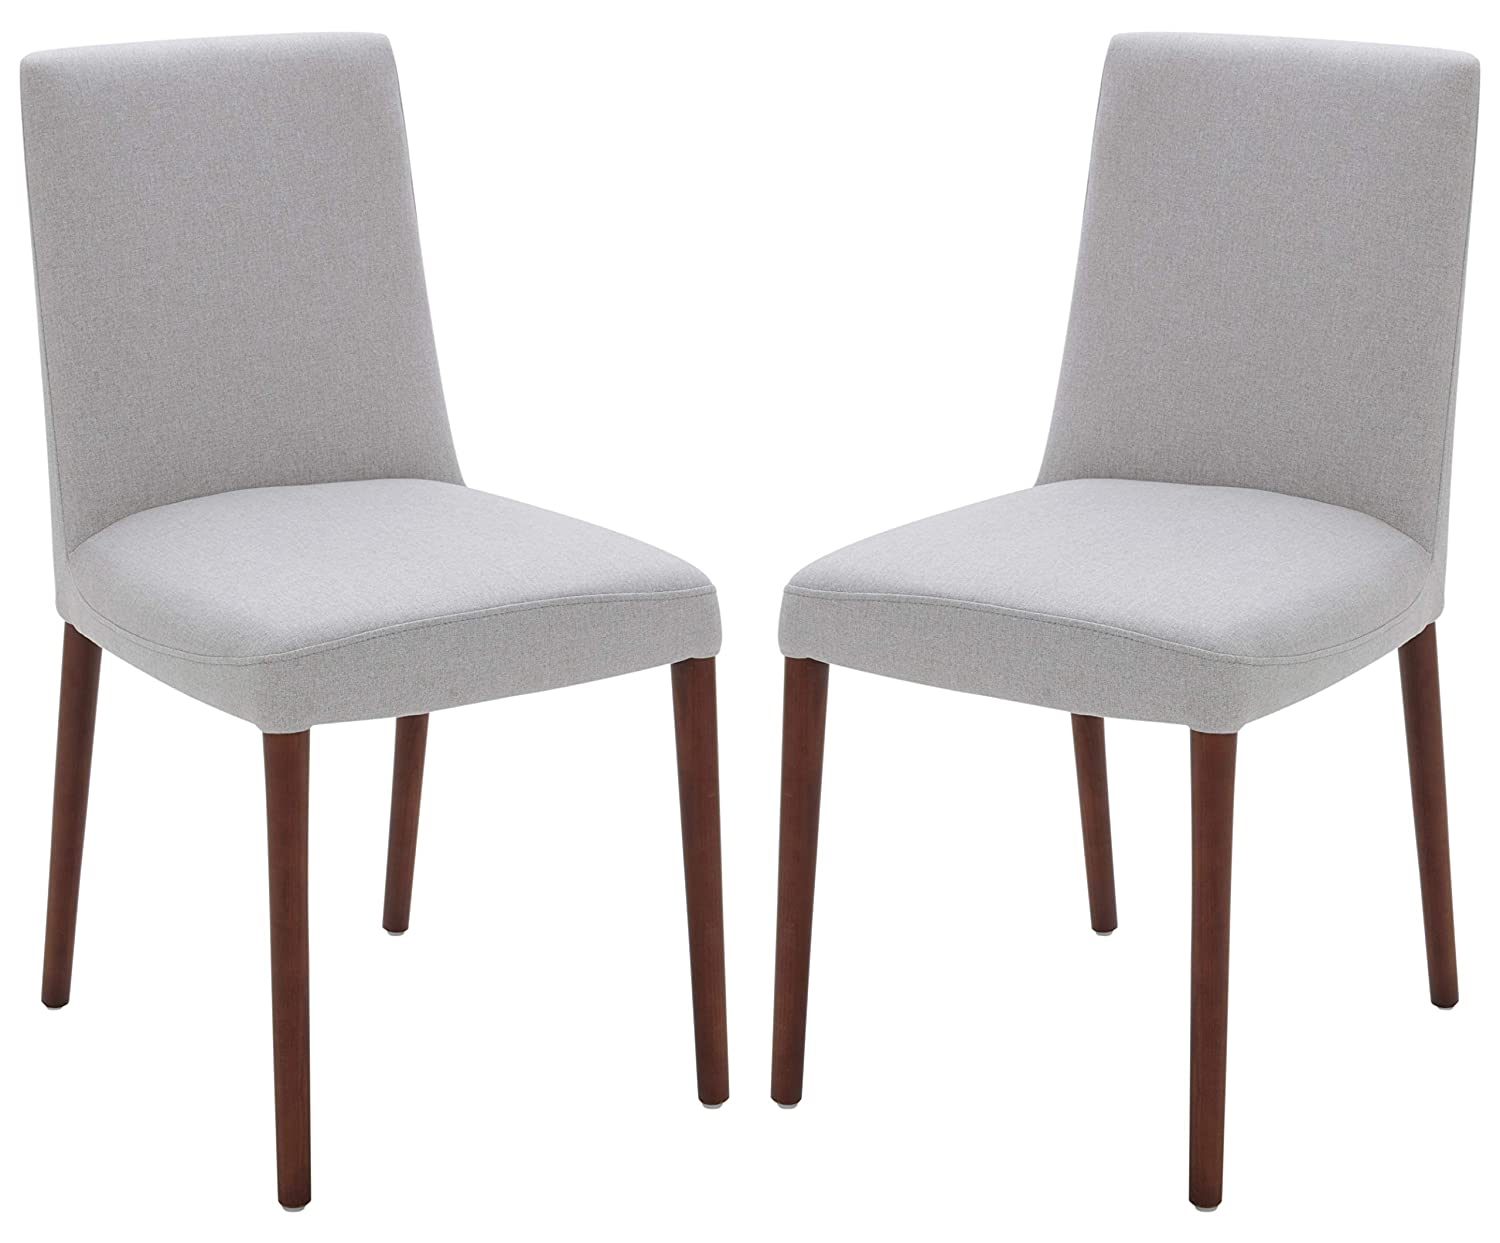 """Rivet Contemporary Square-Back Armless Dining Chair, 34""""H, Felt Gray, Set of 2, Queen"""